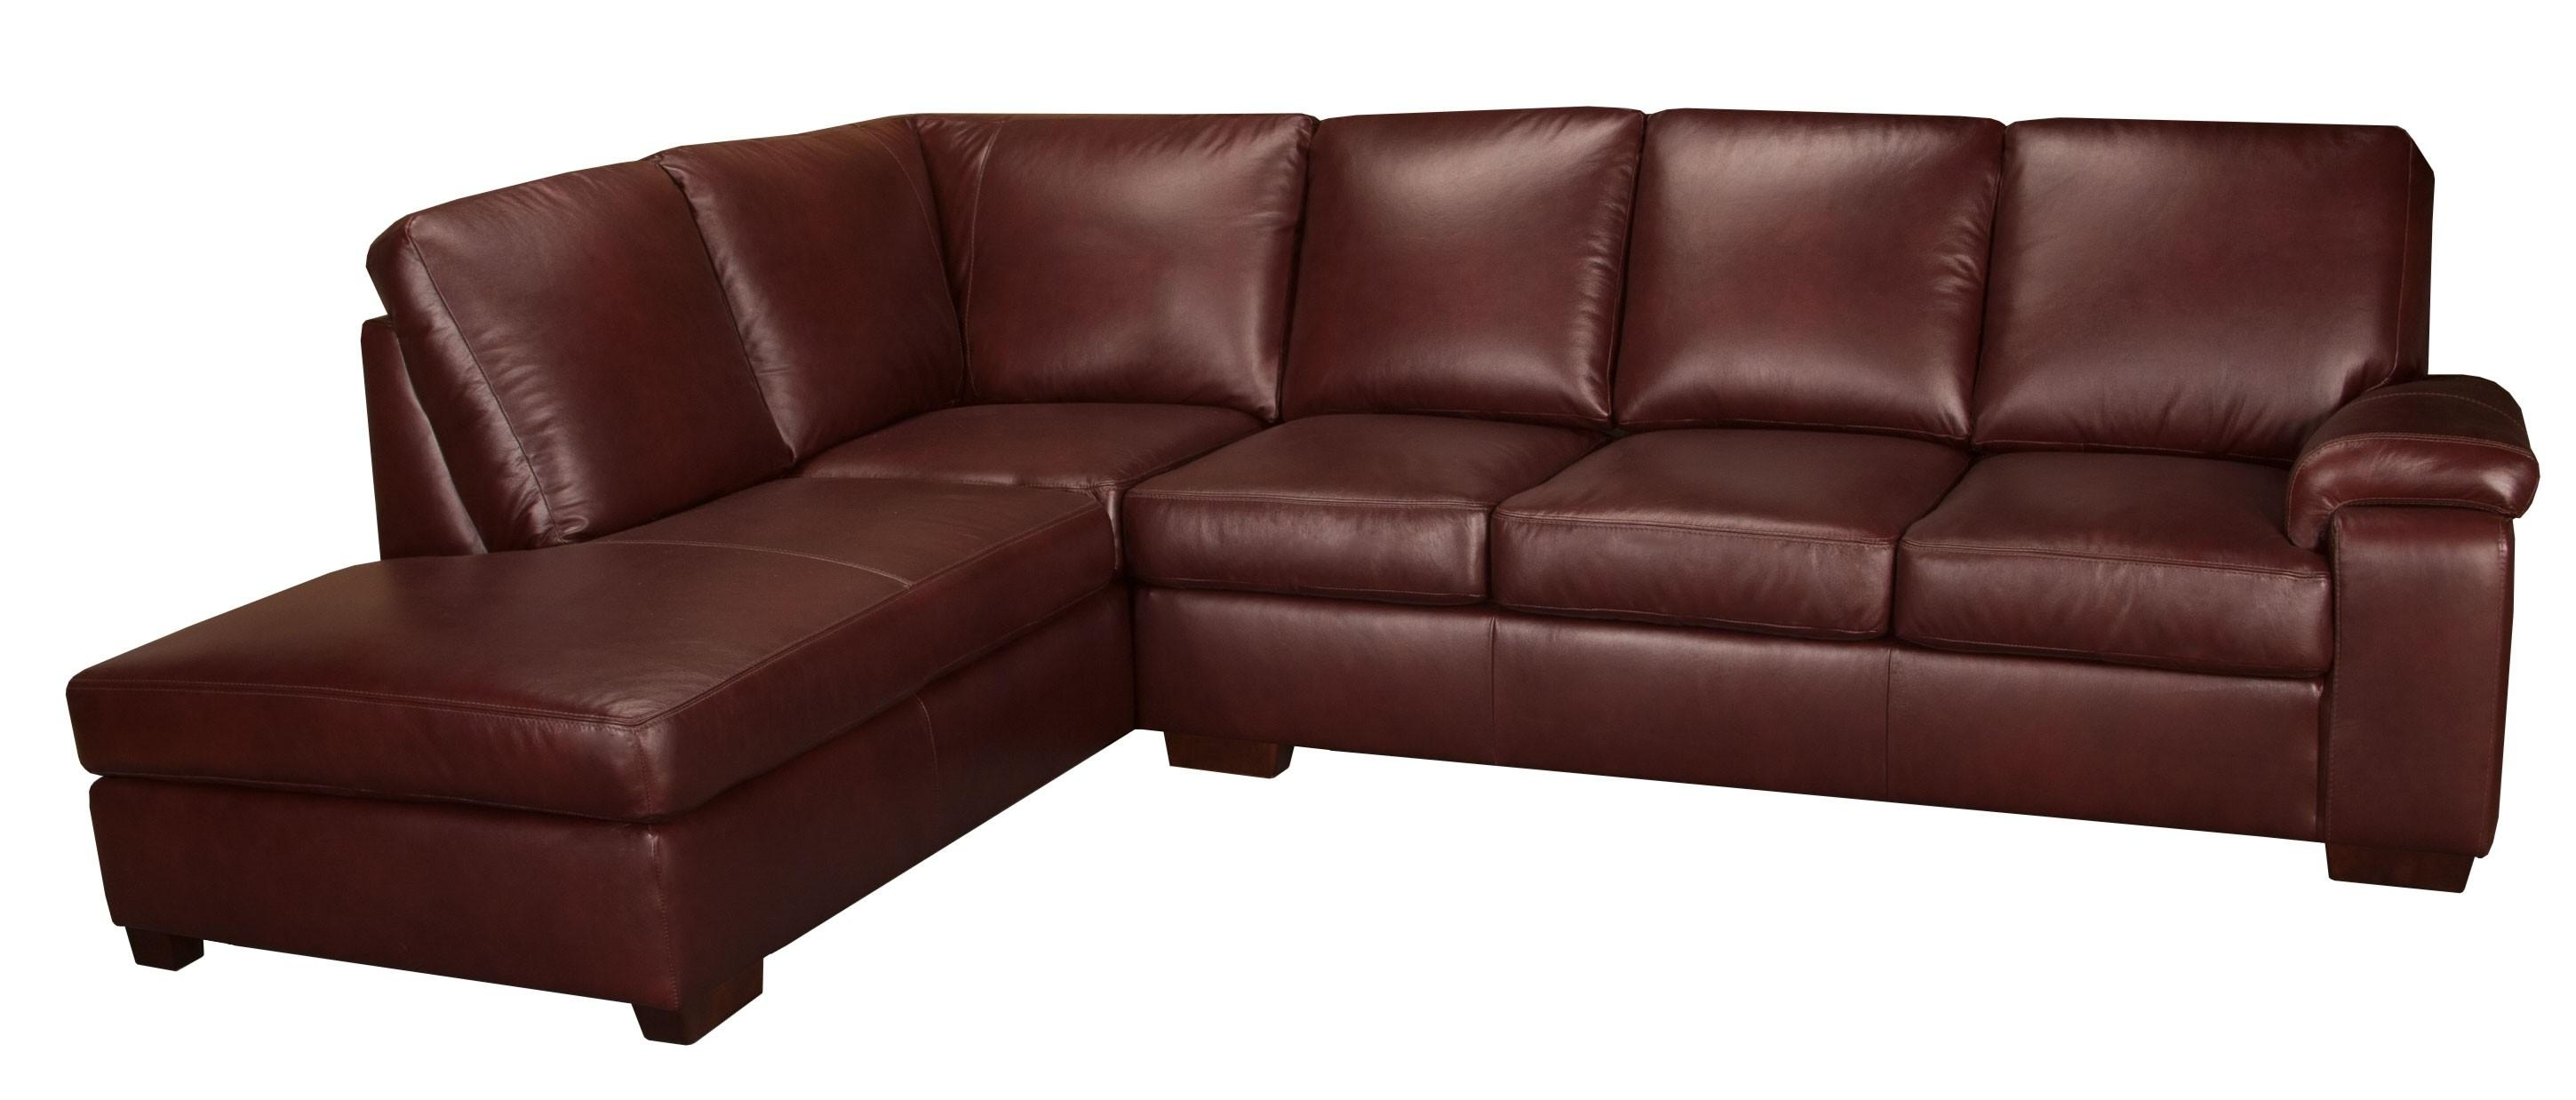 Genuine Leather Sectionals In Toronto & Mississauga | Living With Leather Sectional Sofas Toronto (Photo 4 of 20)